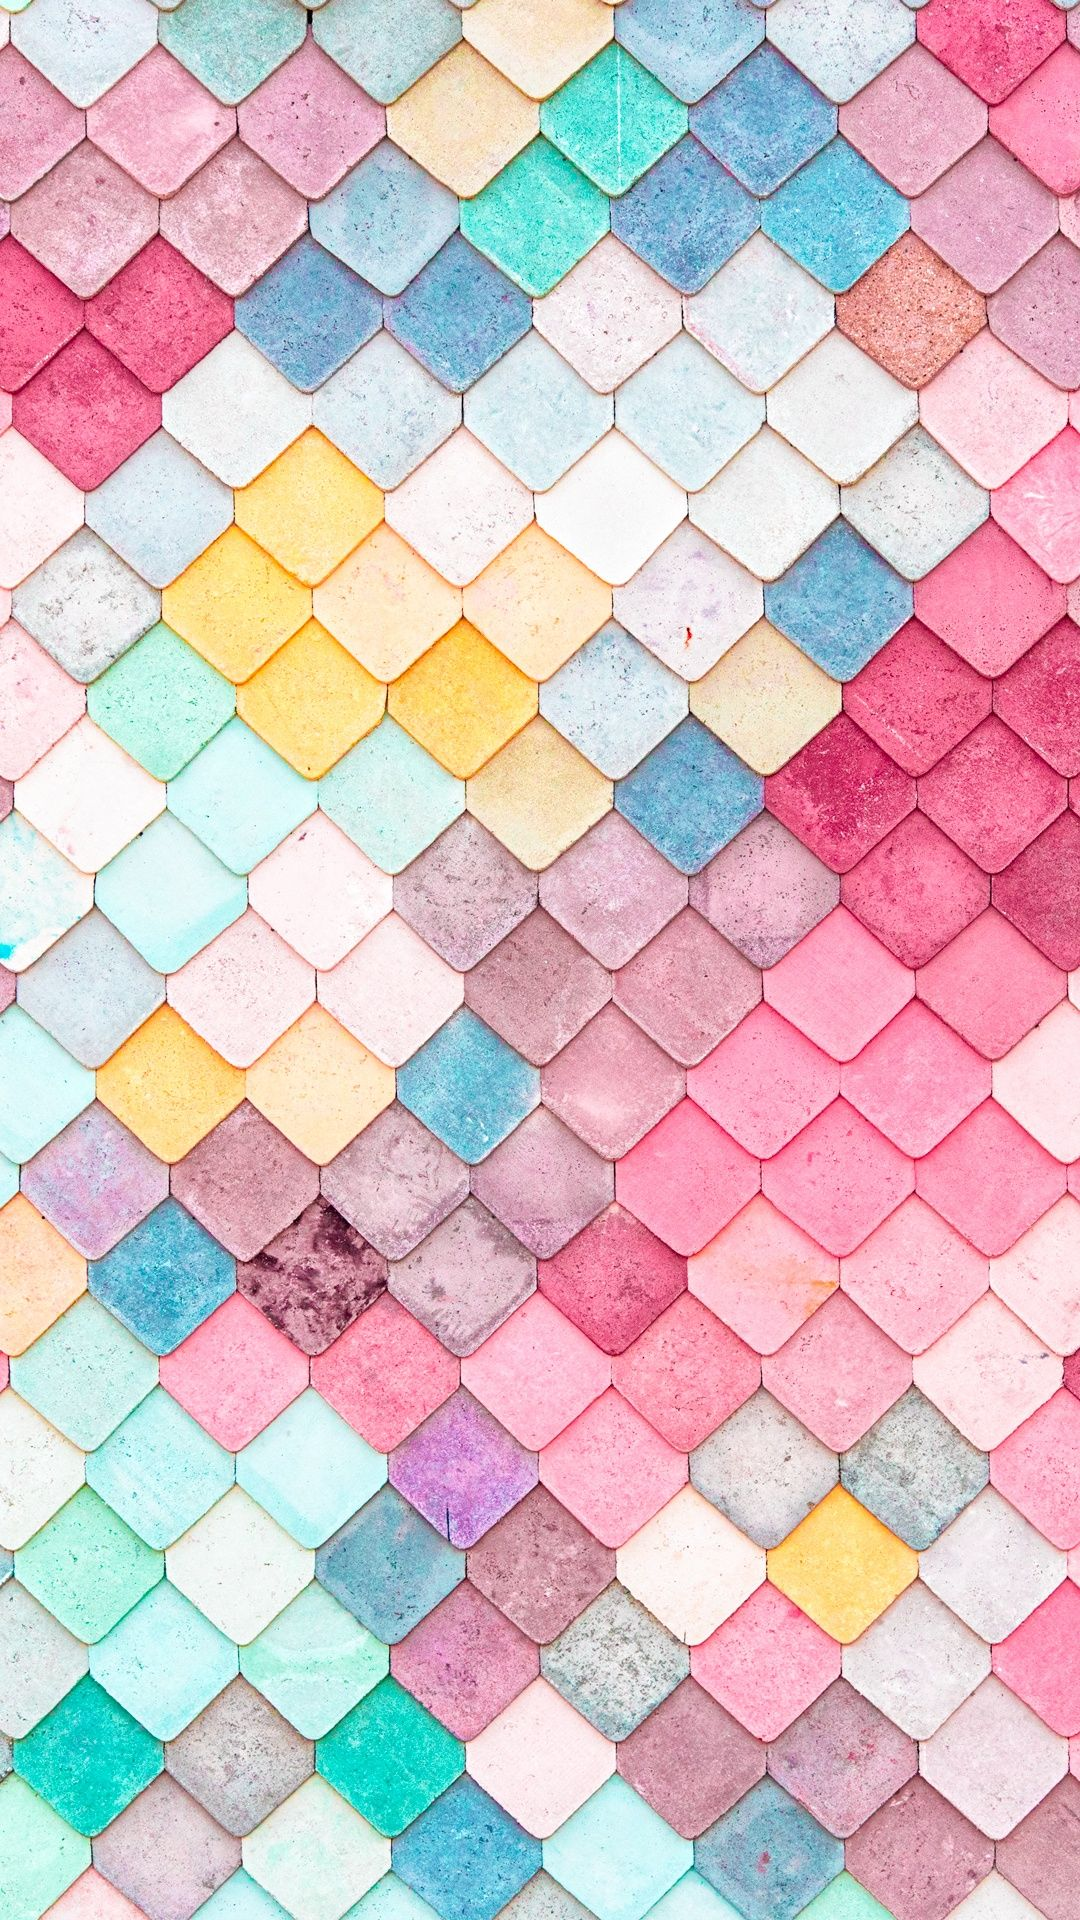 Wallpaper iphone pastel hd - Colorful Roof Tiles Pattern Iphone 6 Plus Hd Wallpaper